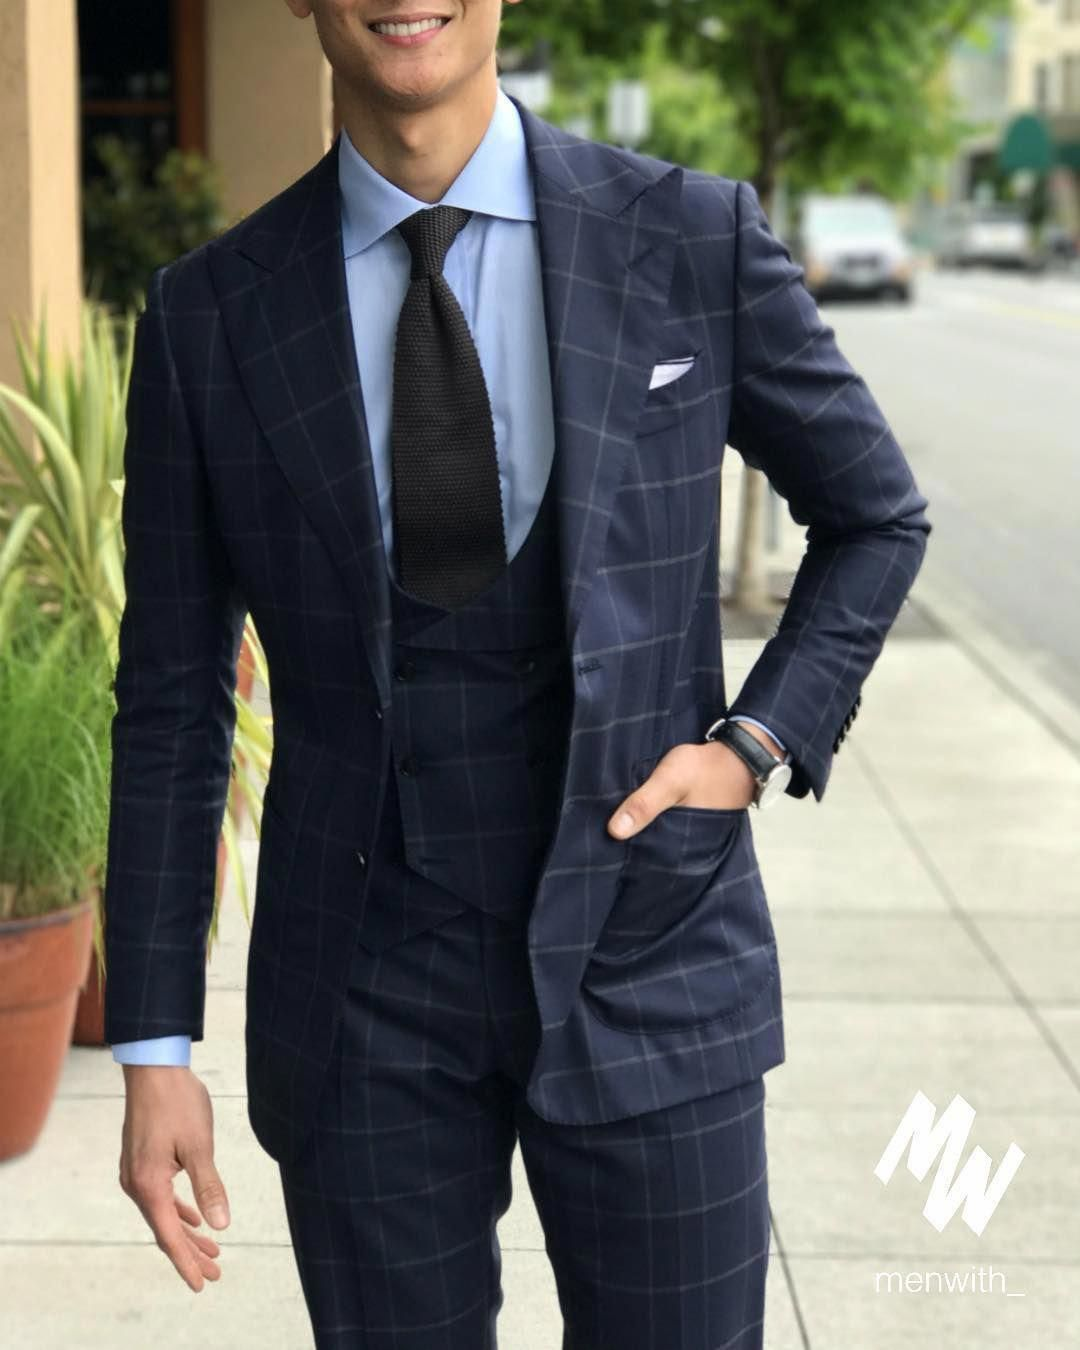 d98afa59c287 Suit up with   menwithclass  suit  mensfashion  menswear  gq  suits ...